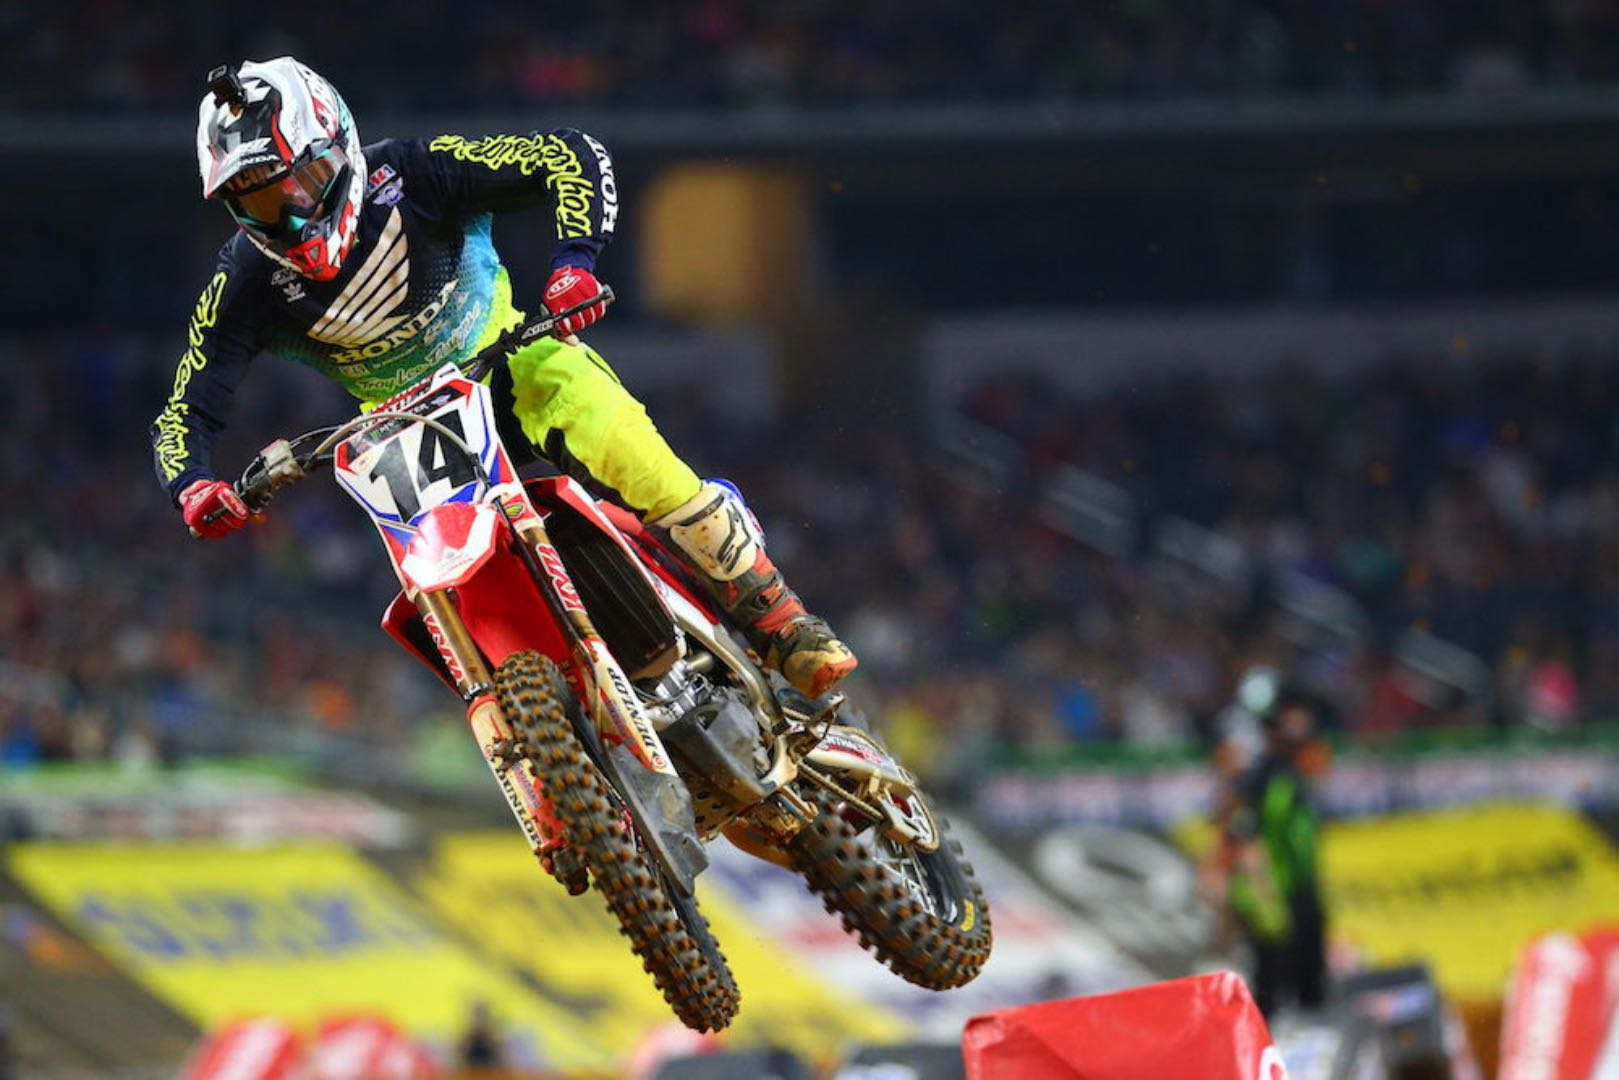 2017 Salt Lake City Supercross Preview: Honda's Cole Seely